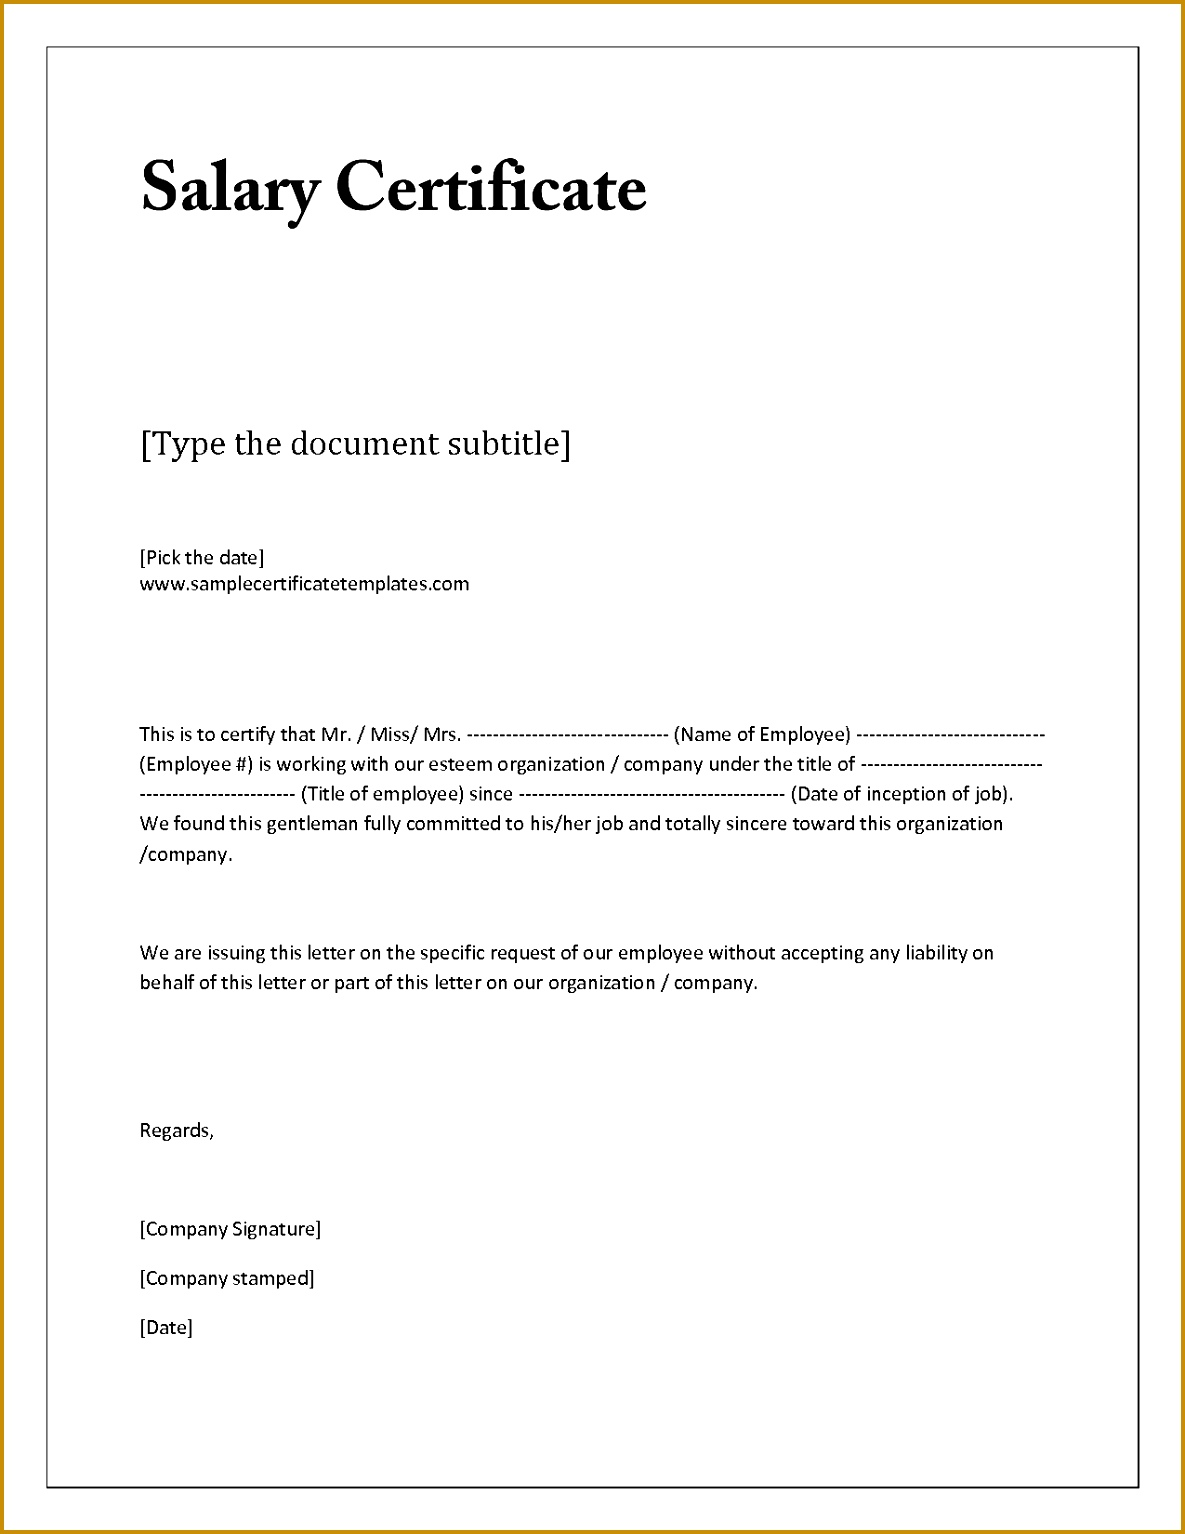 Salary Confirmation Letter Format 11851534